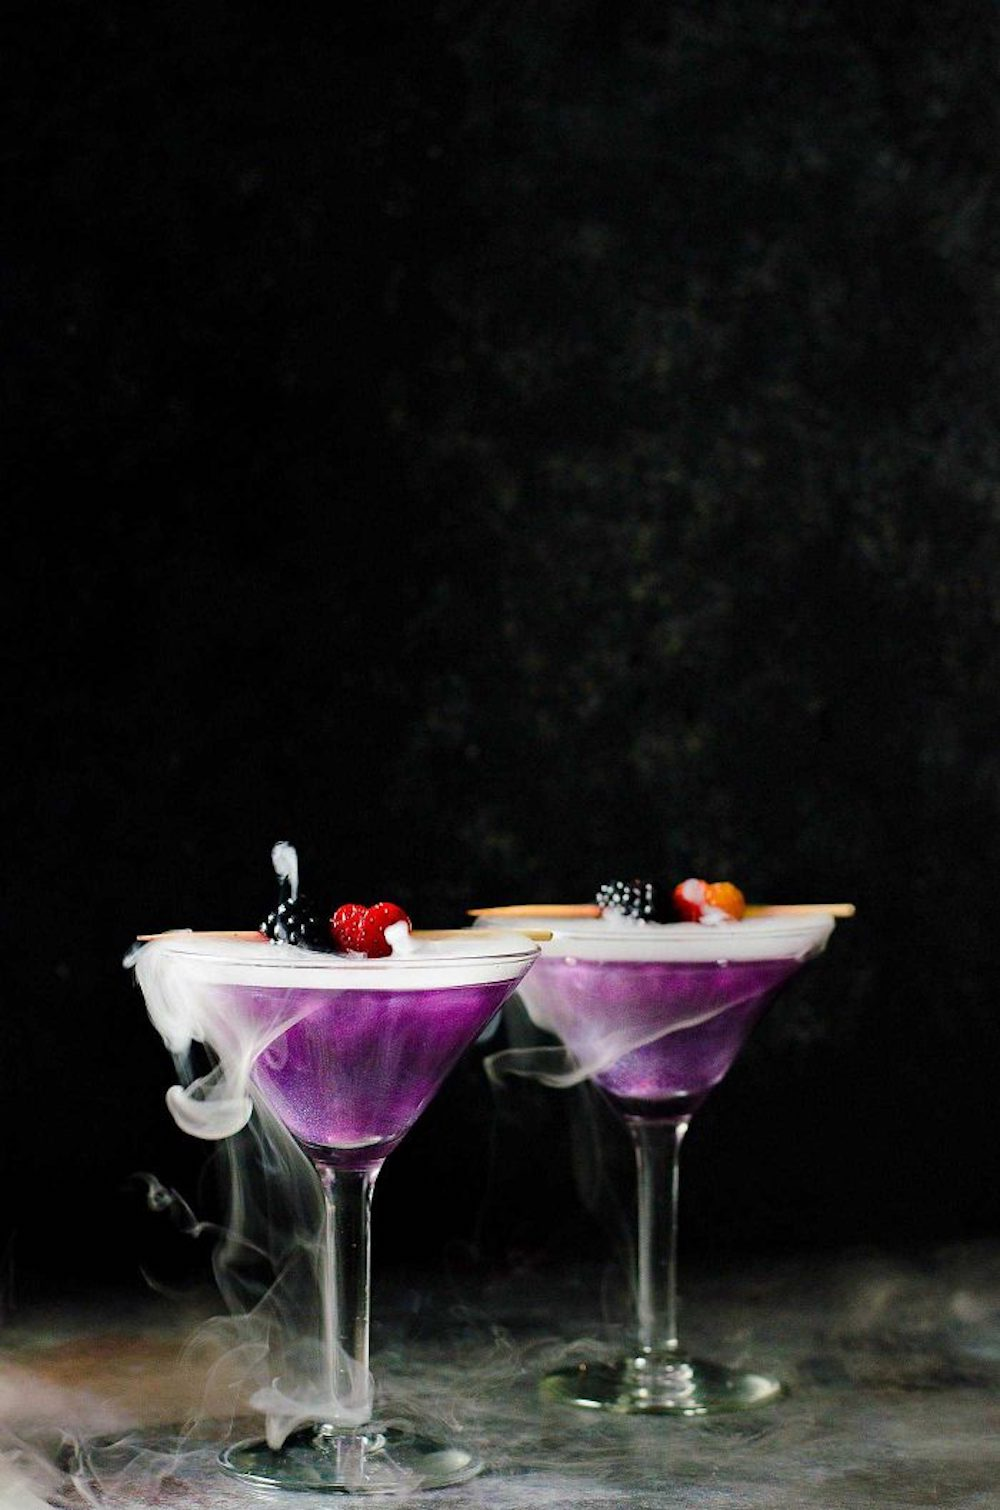 Skinny Halloween cocktails: The Witch's Heart at The Flavor Bender